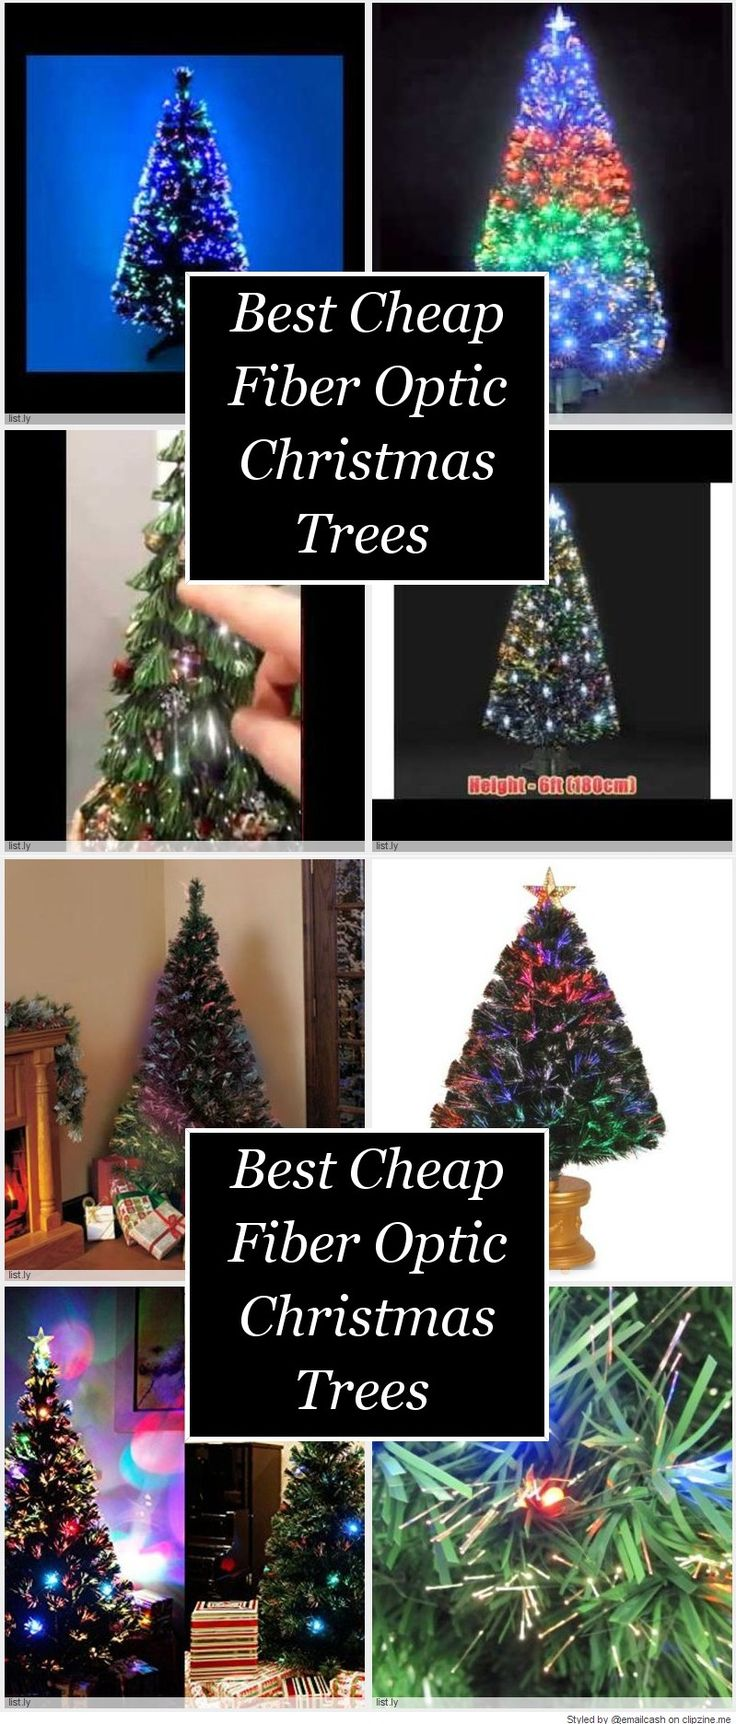 Best Cheap Fiber Optic Christmas Trees                                                                                                                                                                                 More